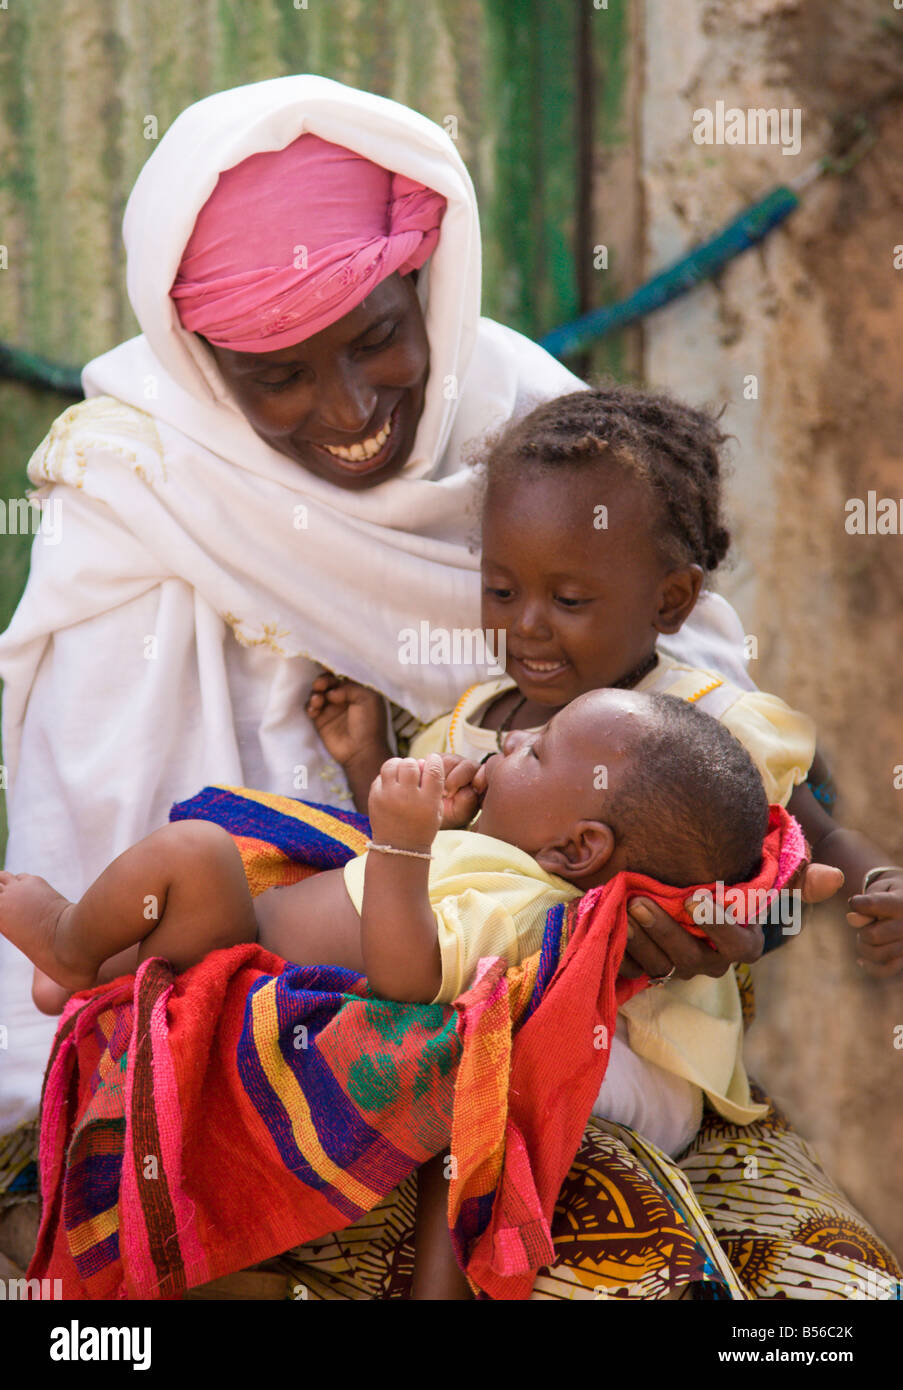 A Fulani woman in Ouagadougou Burkina Faso holds her two youngest children on her lap - Stock Image